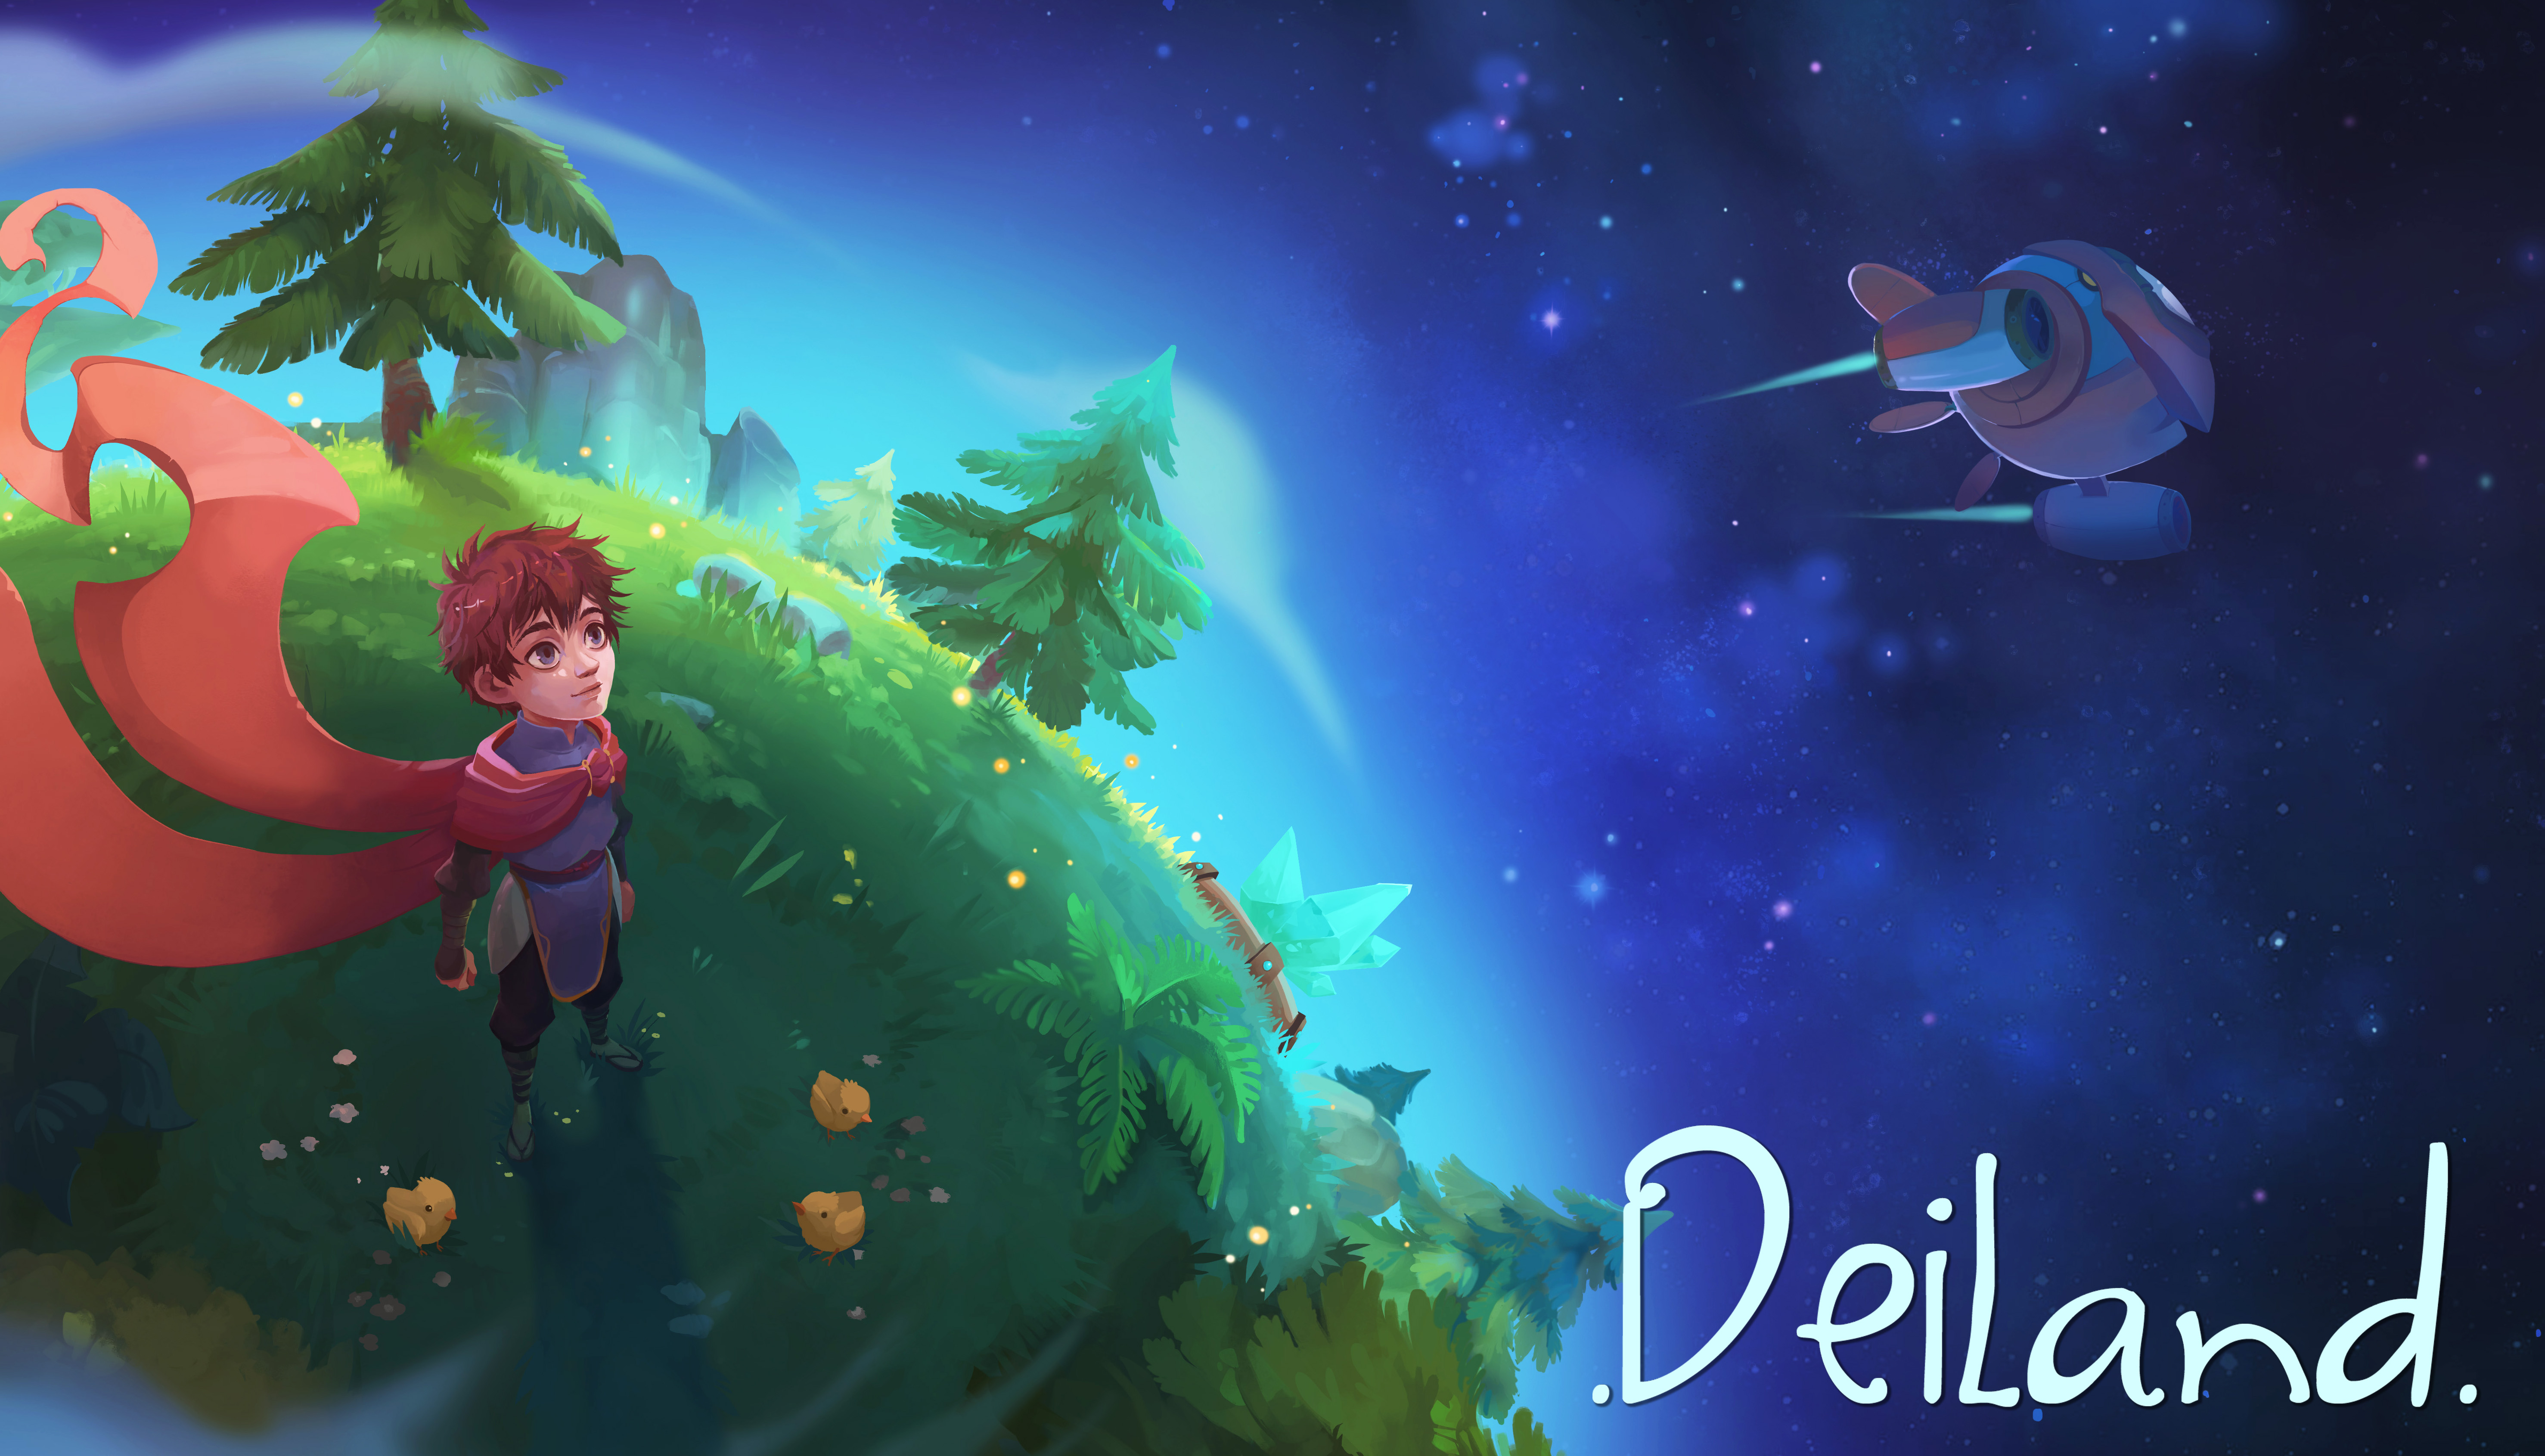 Deiland - RPG, sandbox and adventures on a little planet